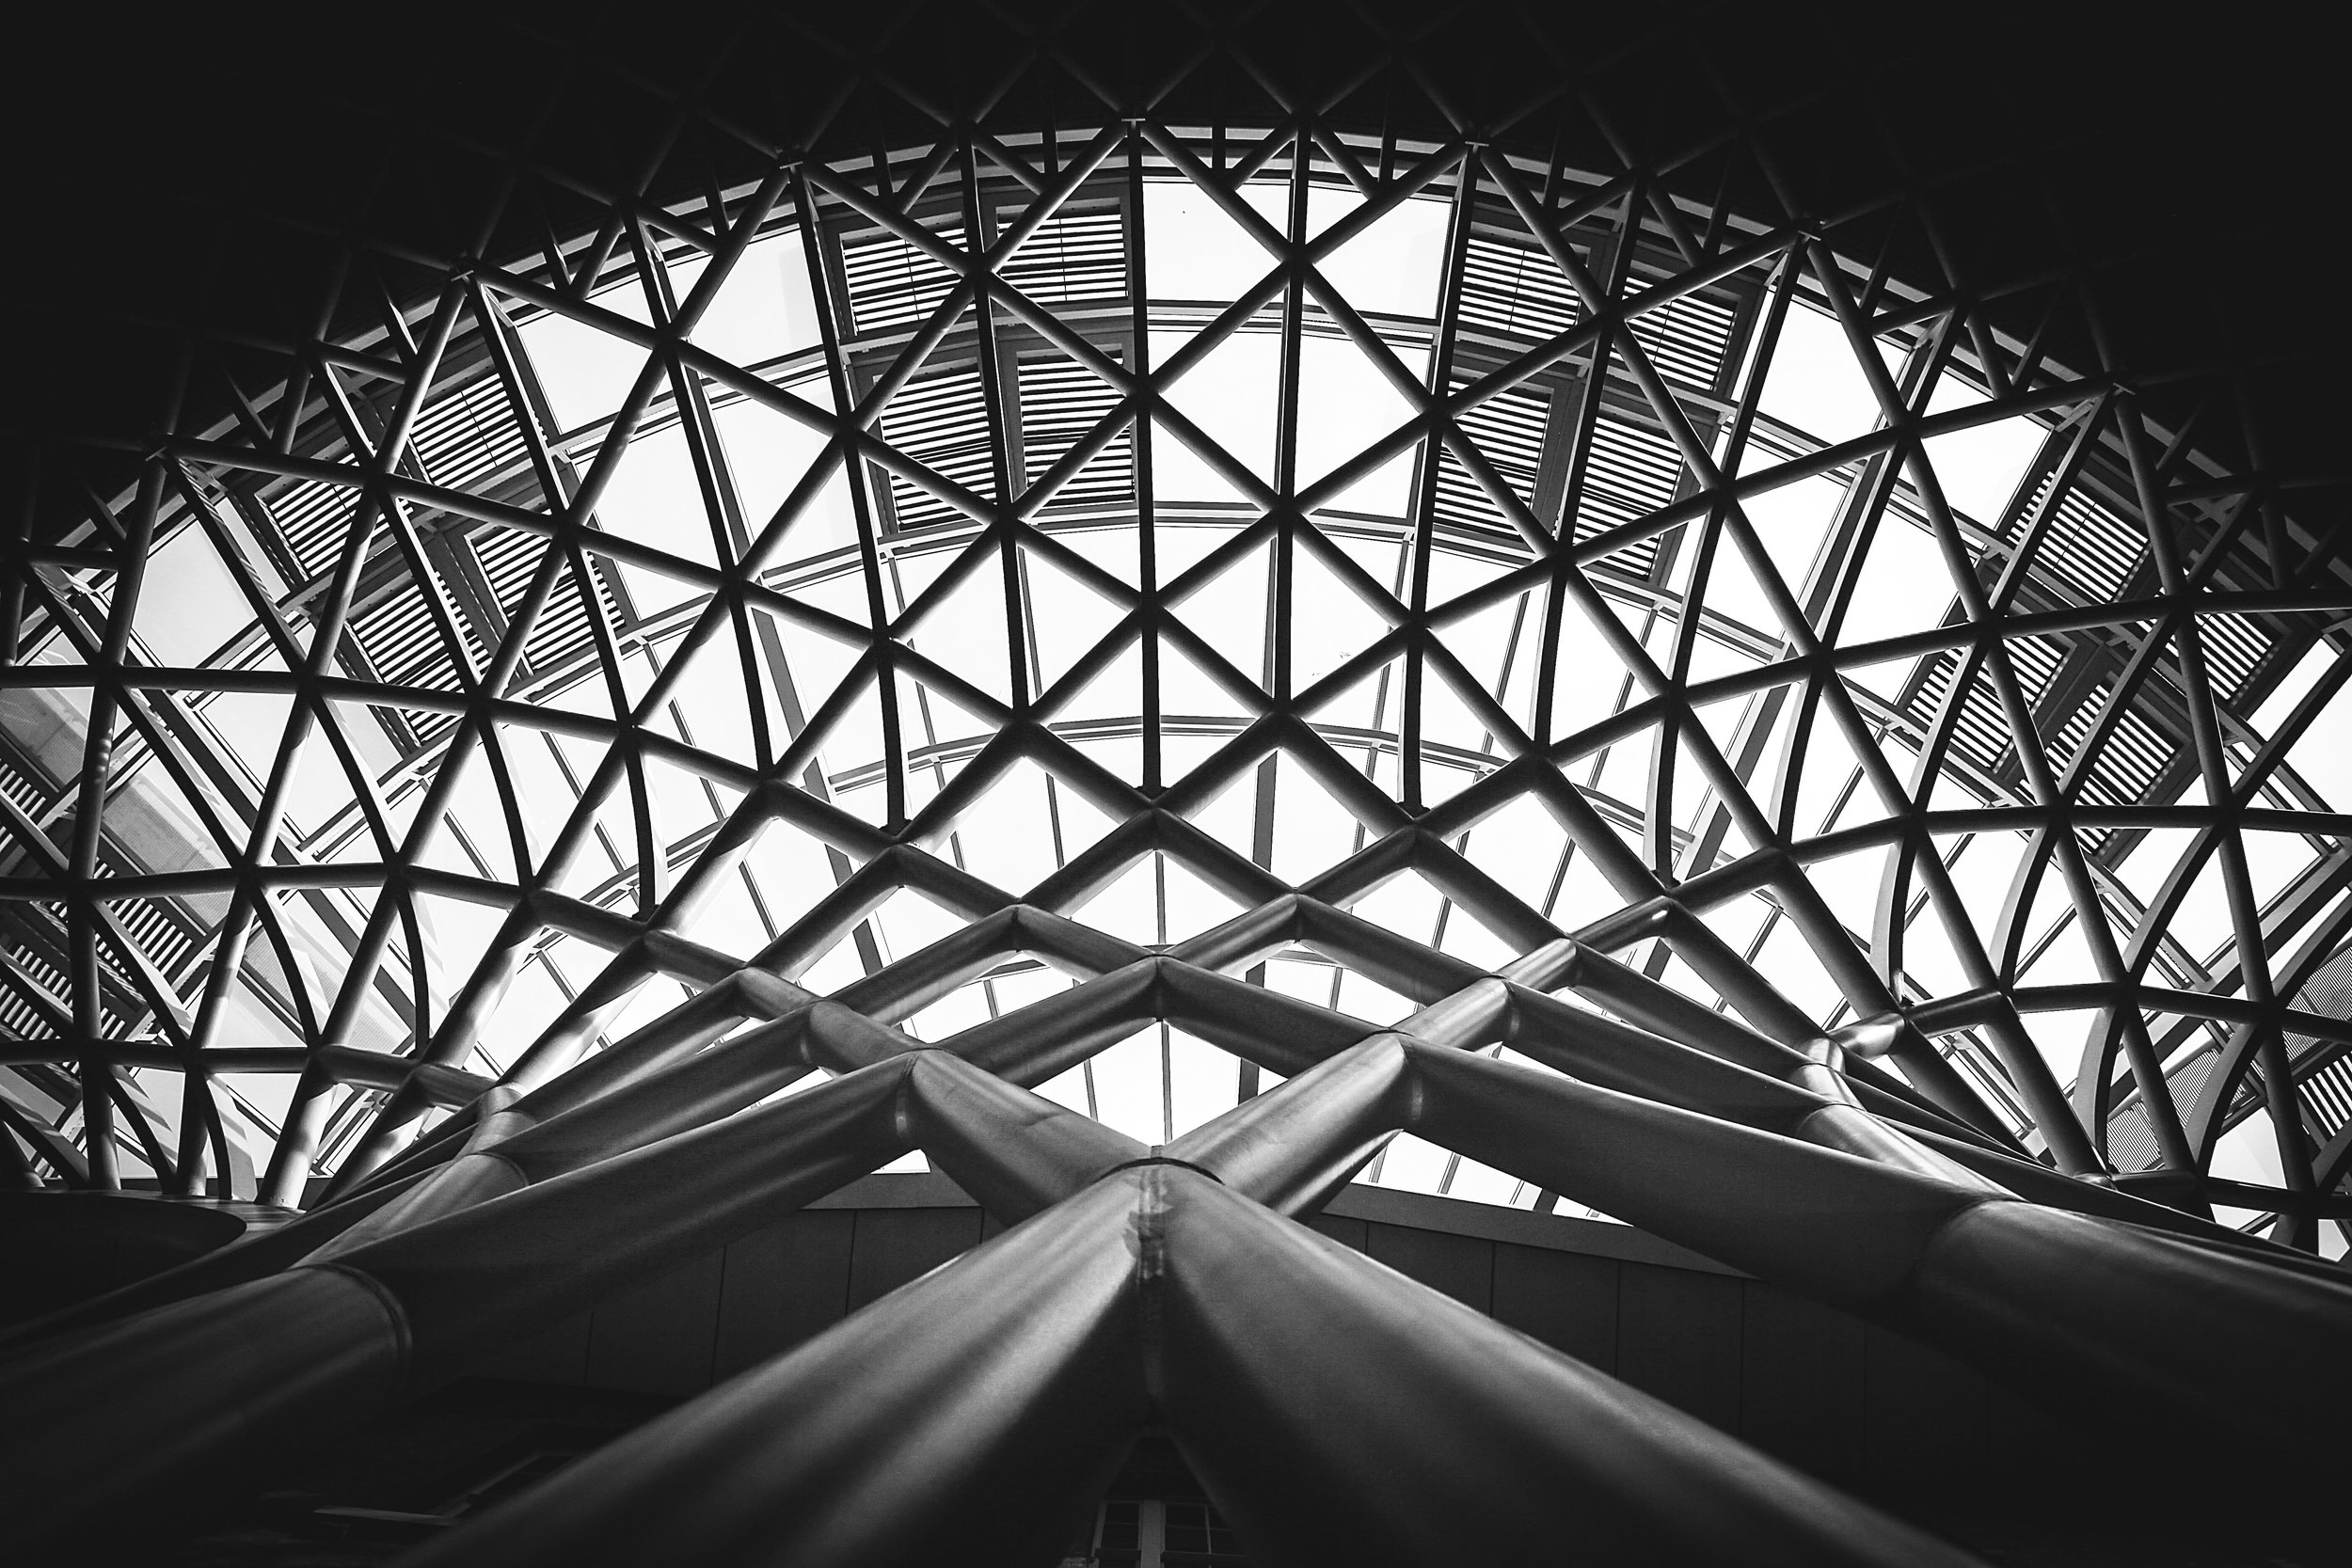 architecture-black-and-white-building-175771.jpg